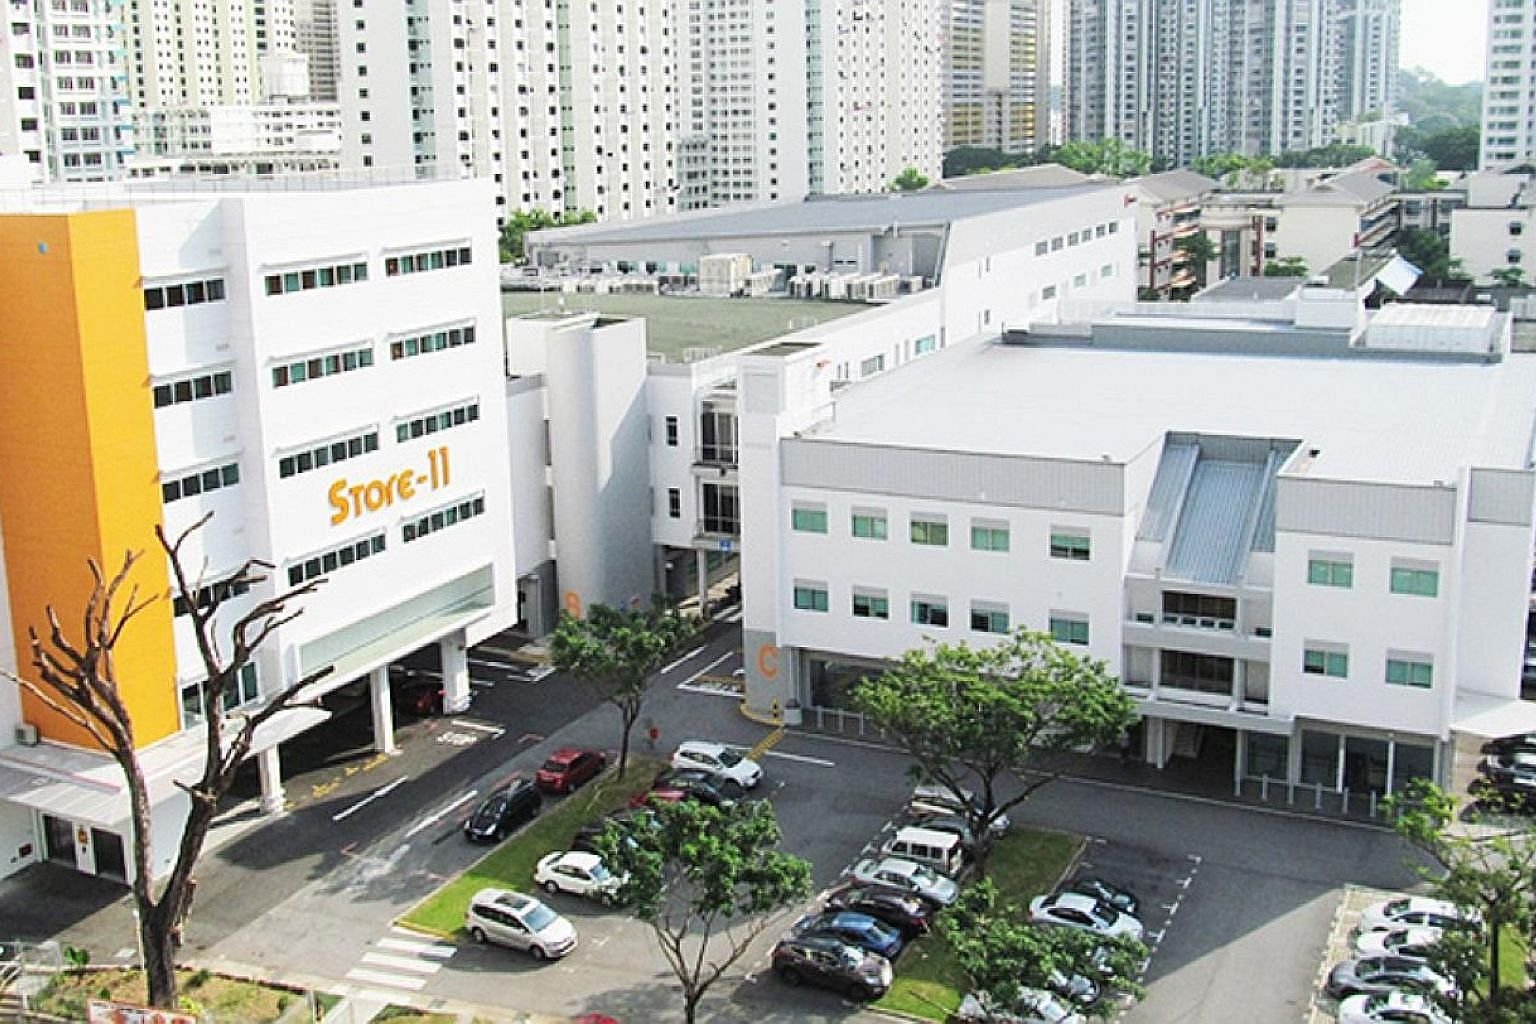 Jackson Square in Toa Payoh, owned by Viva, has seen multiple oil services firms move out of its premises.